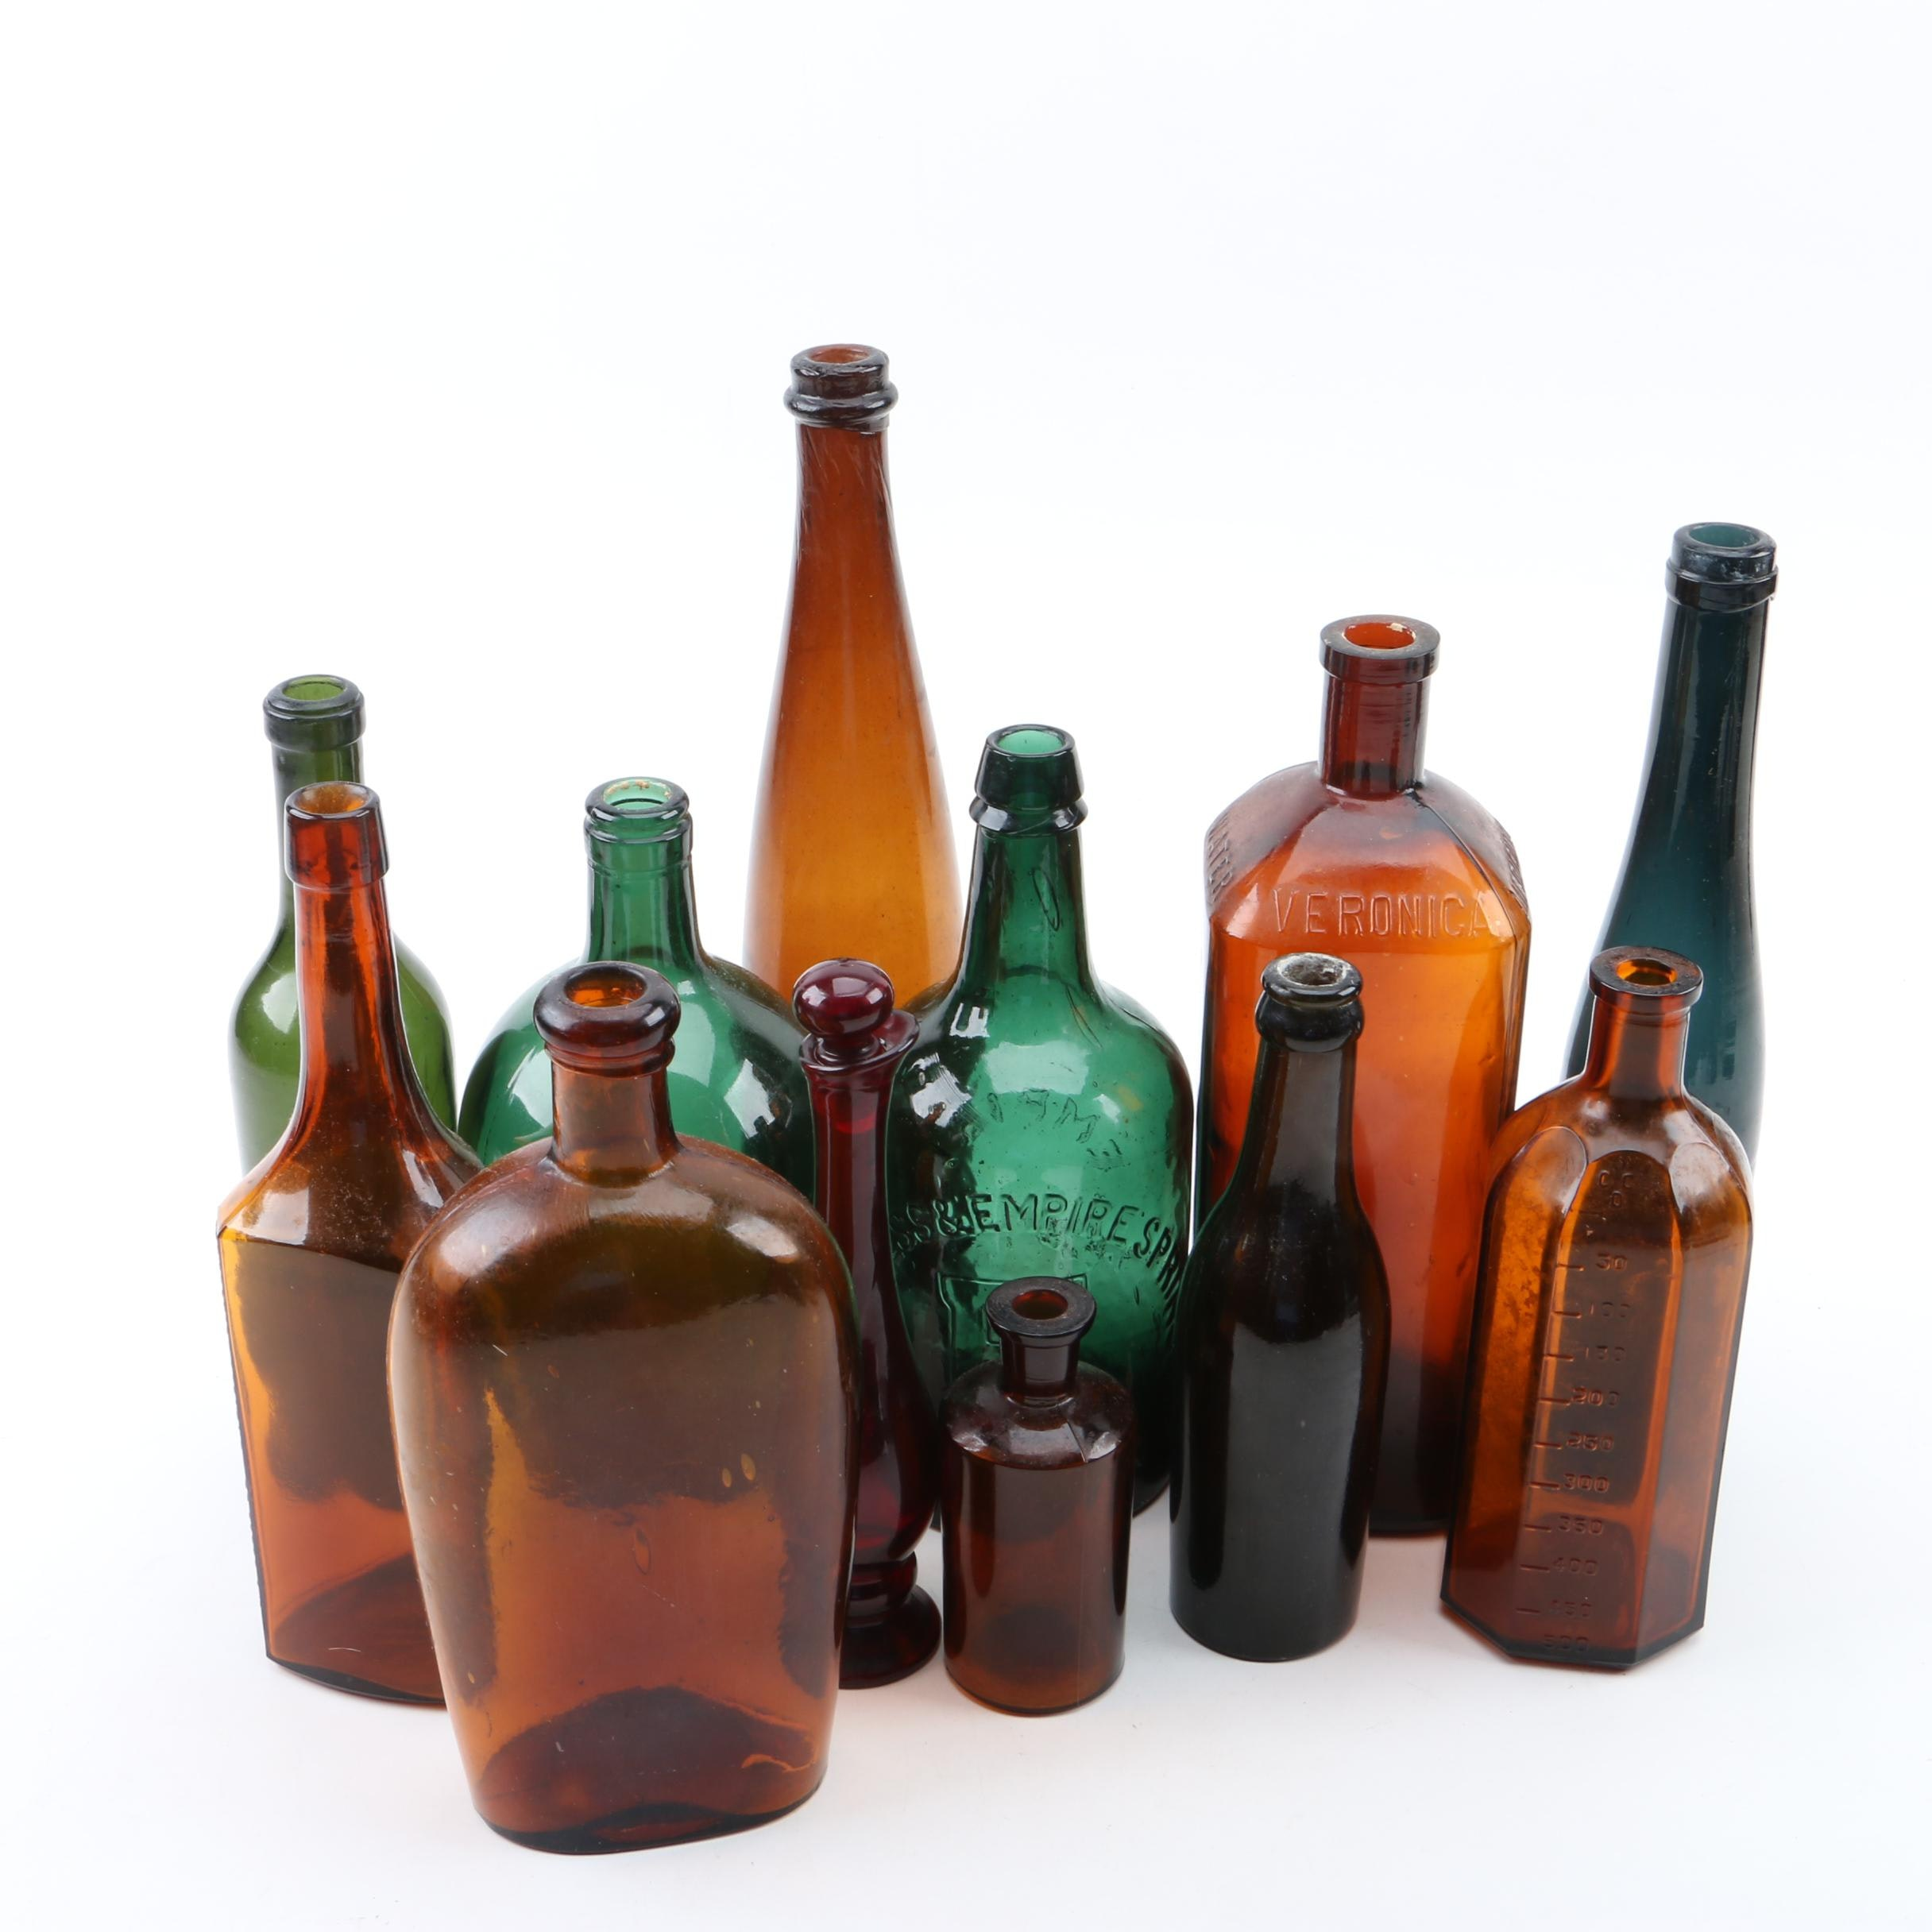 Antique Congress & Empire Spring Co. and Vintage Glass Bottles